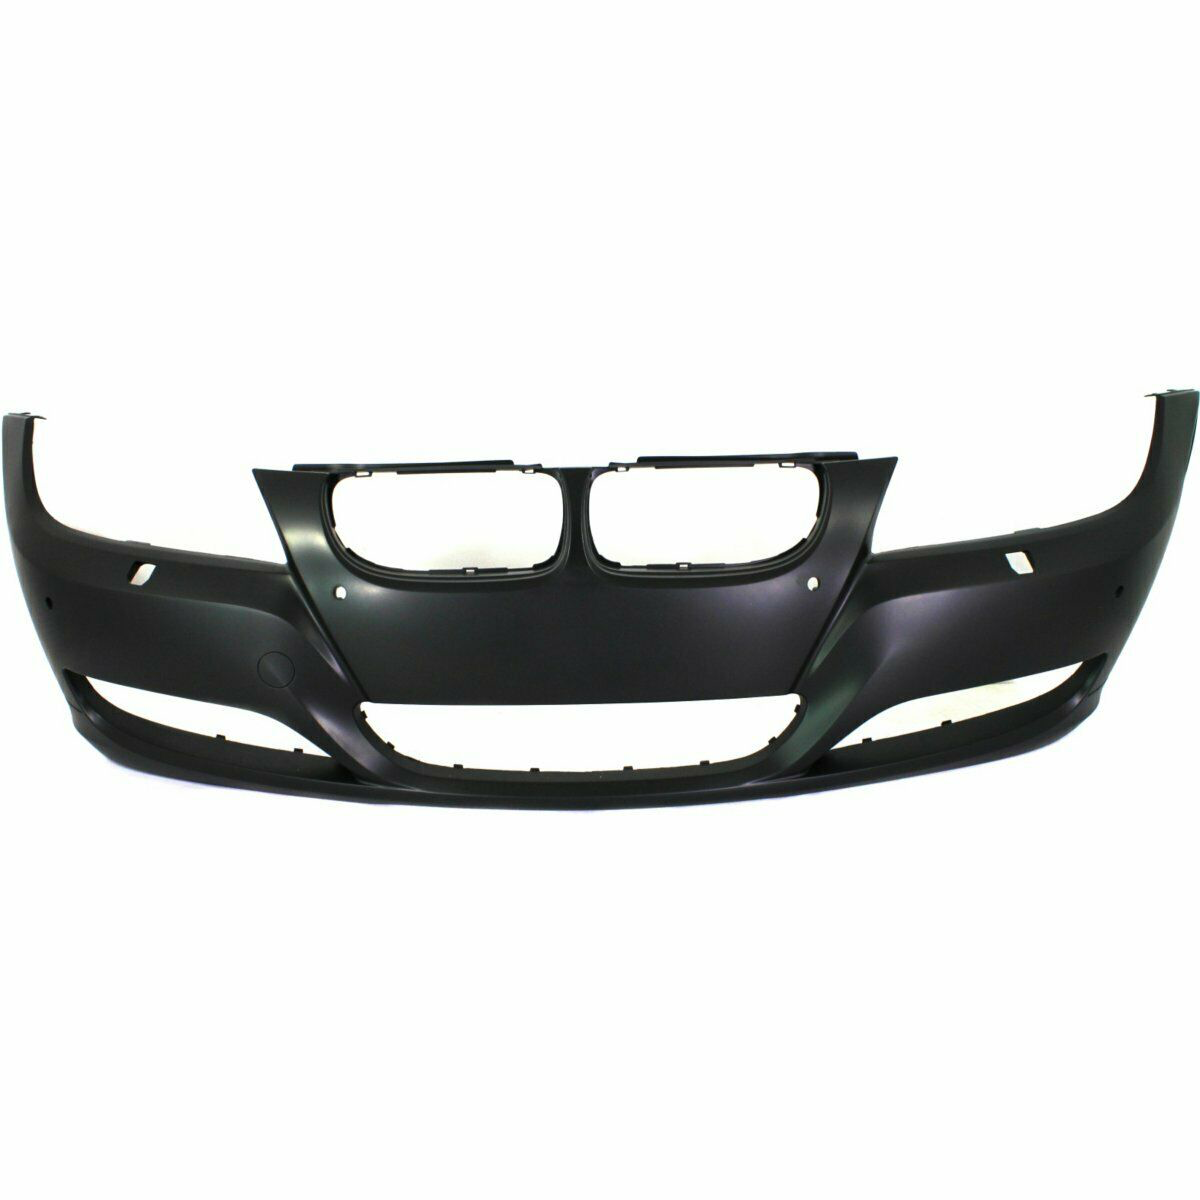 2009-2011 BMW 3 Series w/Snsr w/HL Wash Front Bumper Painted to Match